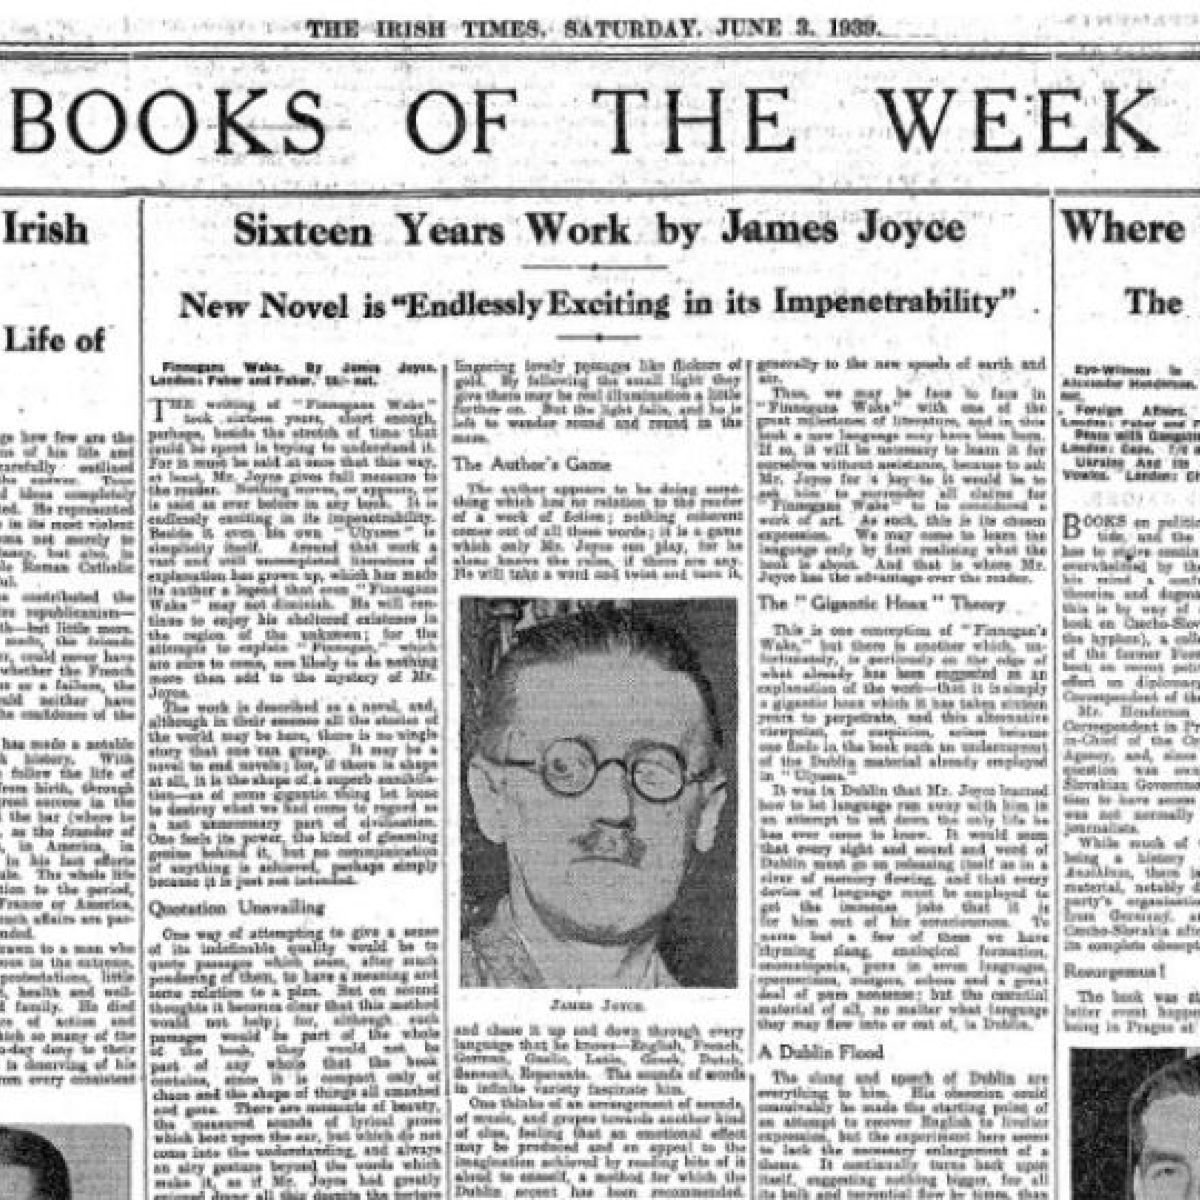 Endlessly Exciting in its Impenetrability\': 1939 James Joyce review